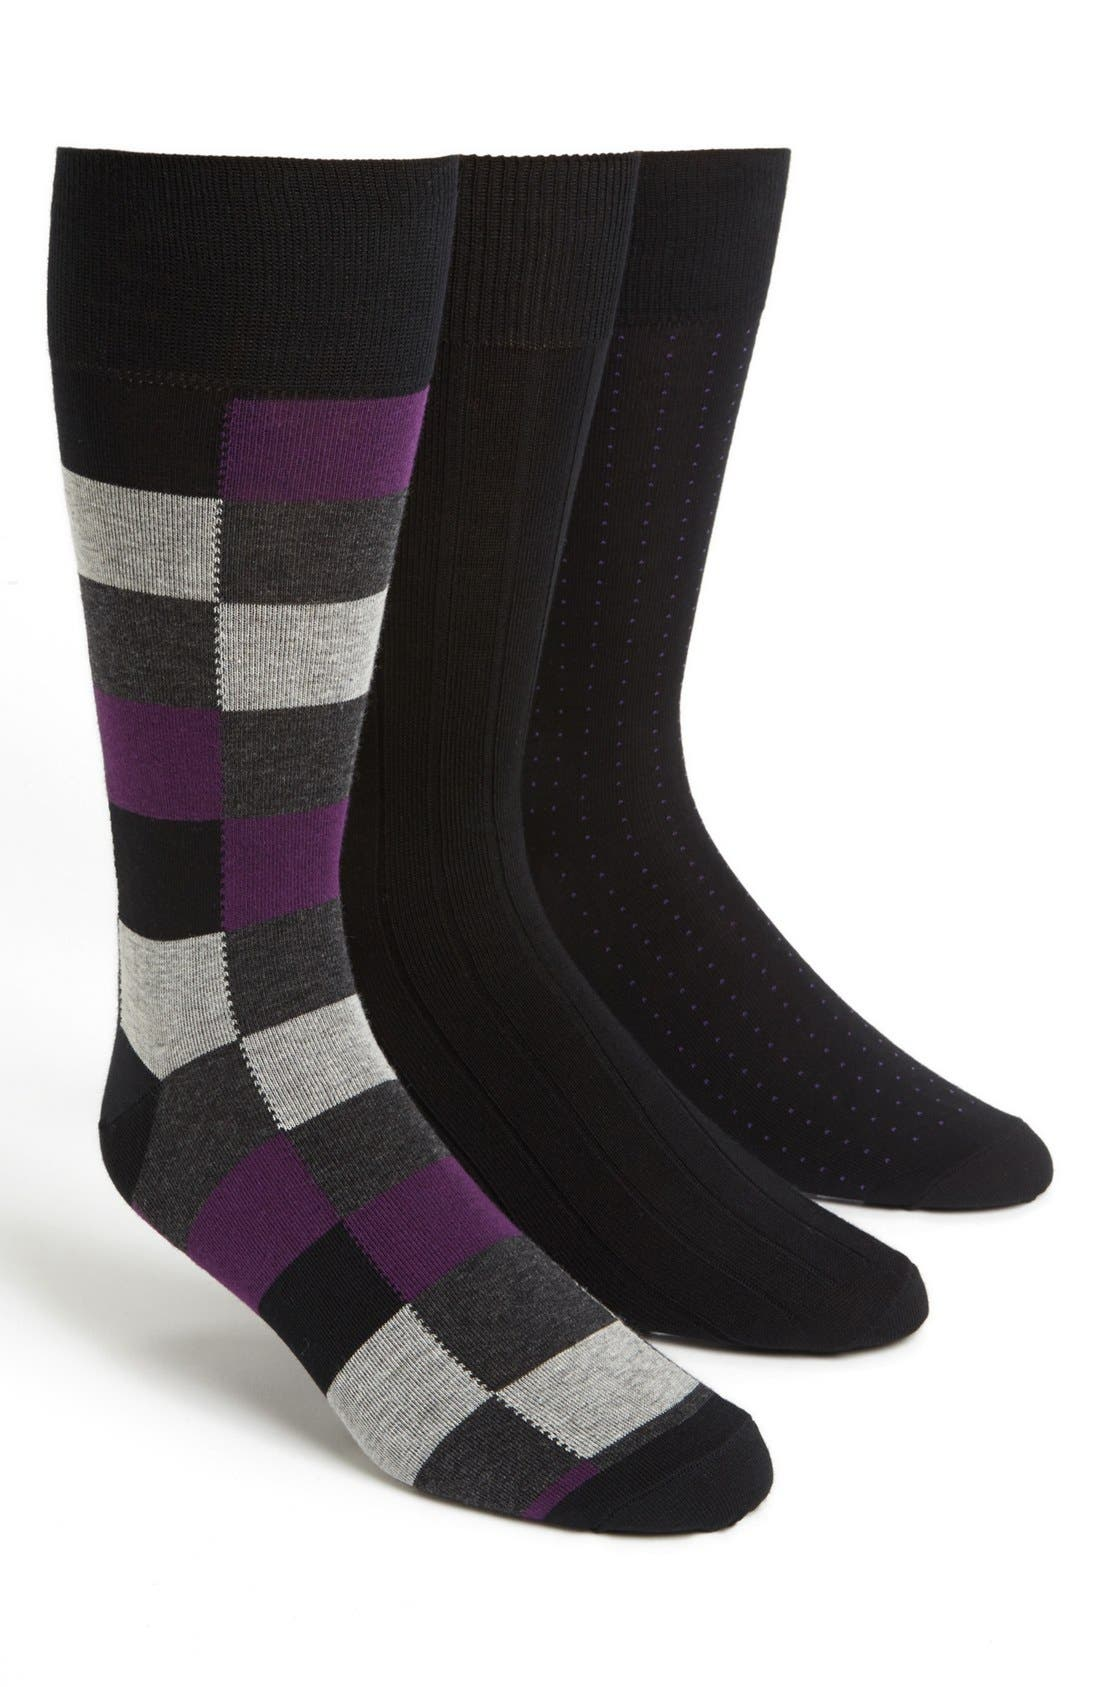 Alternate Image 1 Selected - Cole Haan Pima Cotton Blend Socks (Assorted 3-Pack)